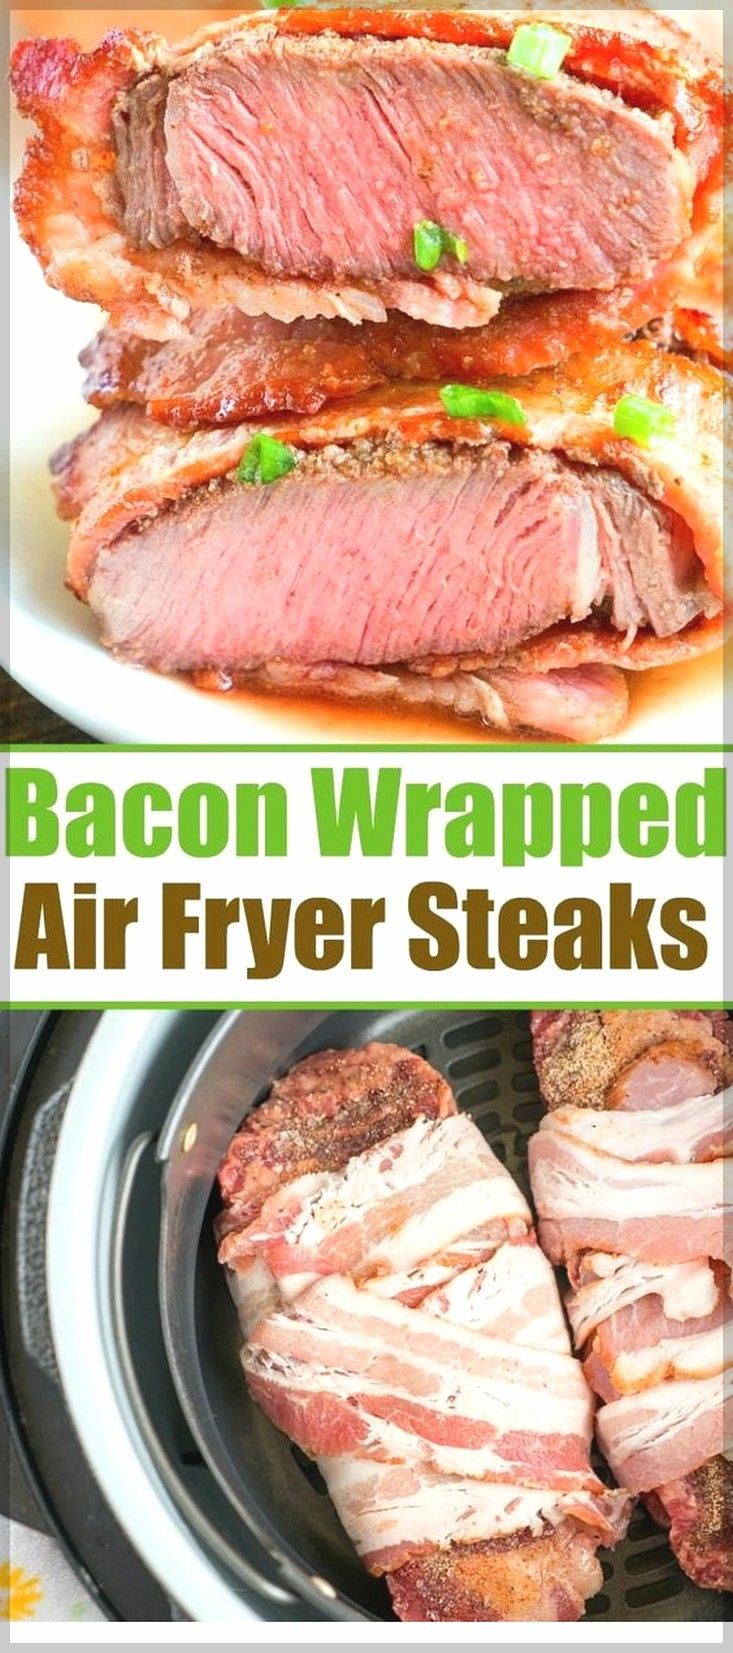 Air fryer steak recipe with images air fryer recipes